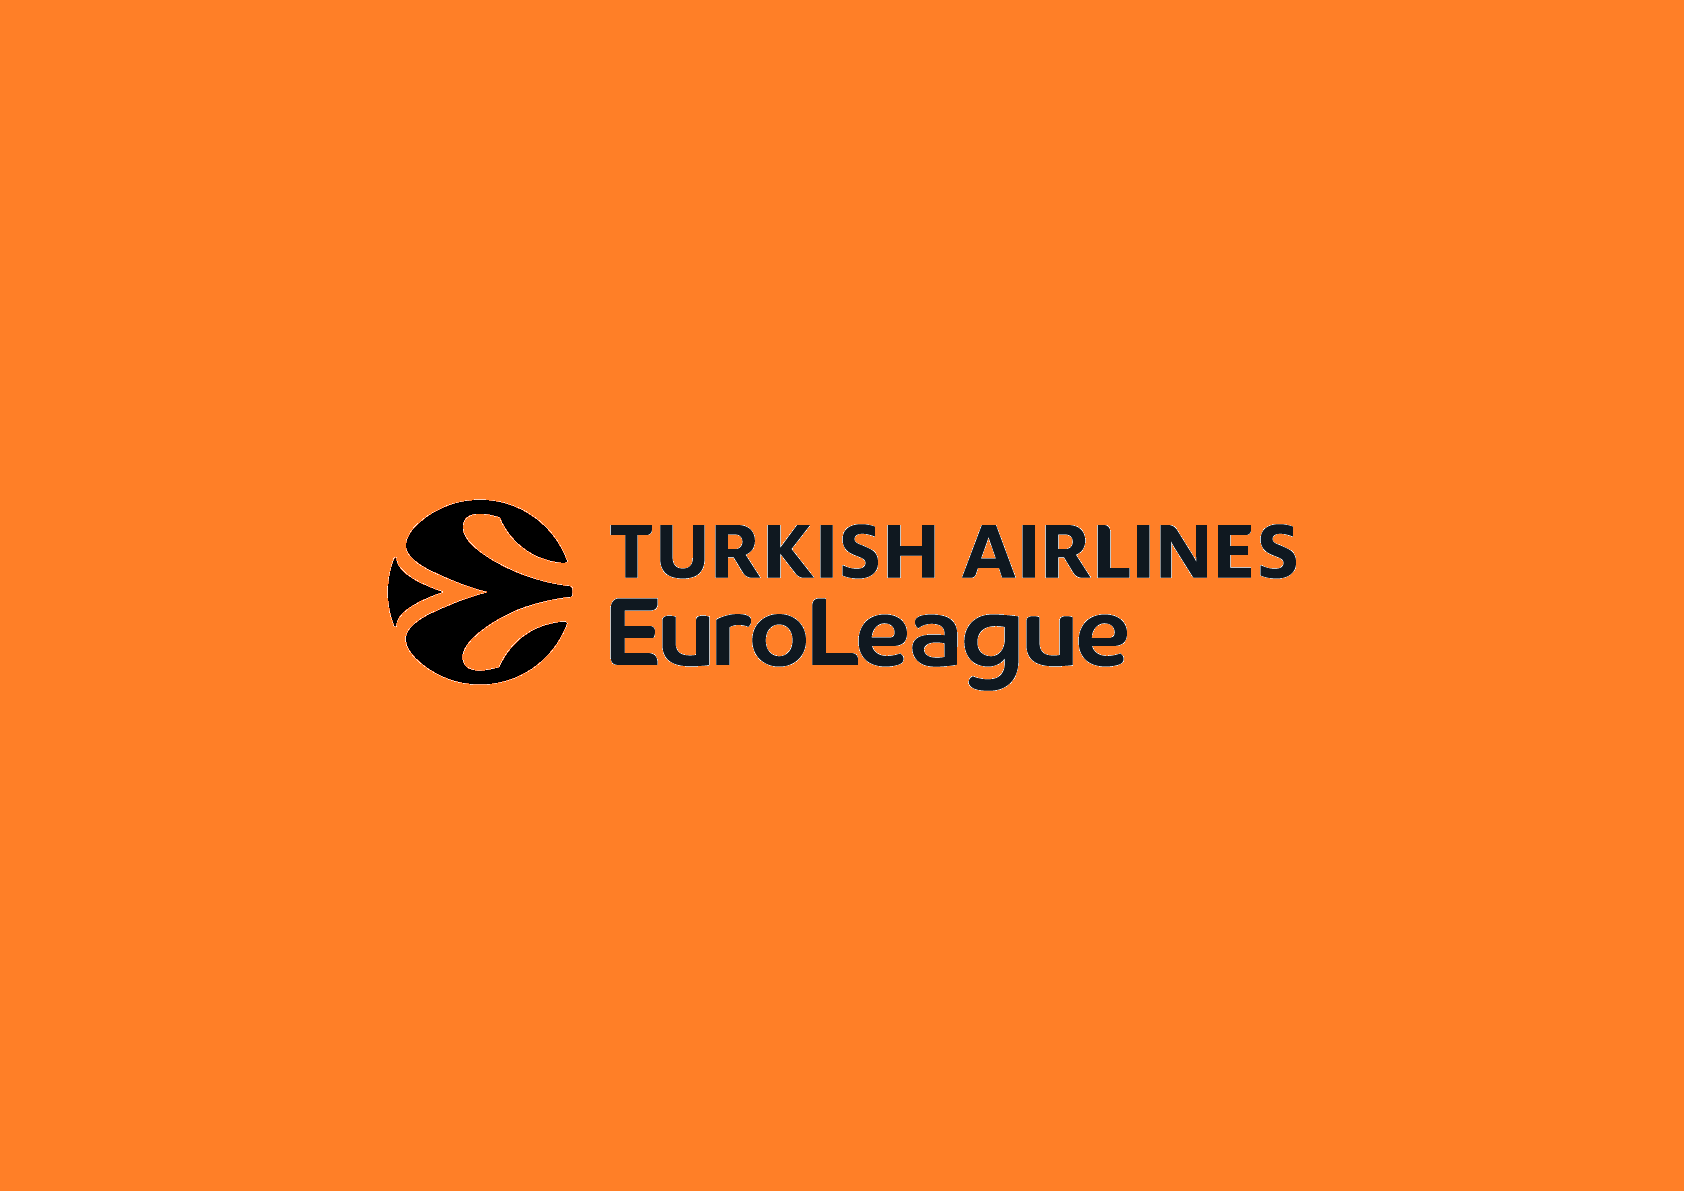 Turkish Airlines Euroleague 2019-20: a che punto è la notte? Le outsider (8°-5°)